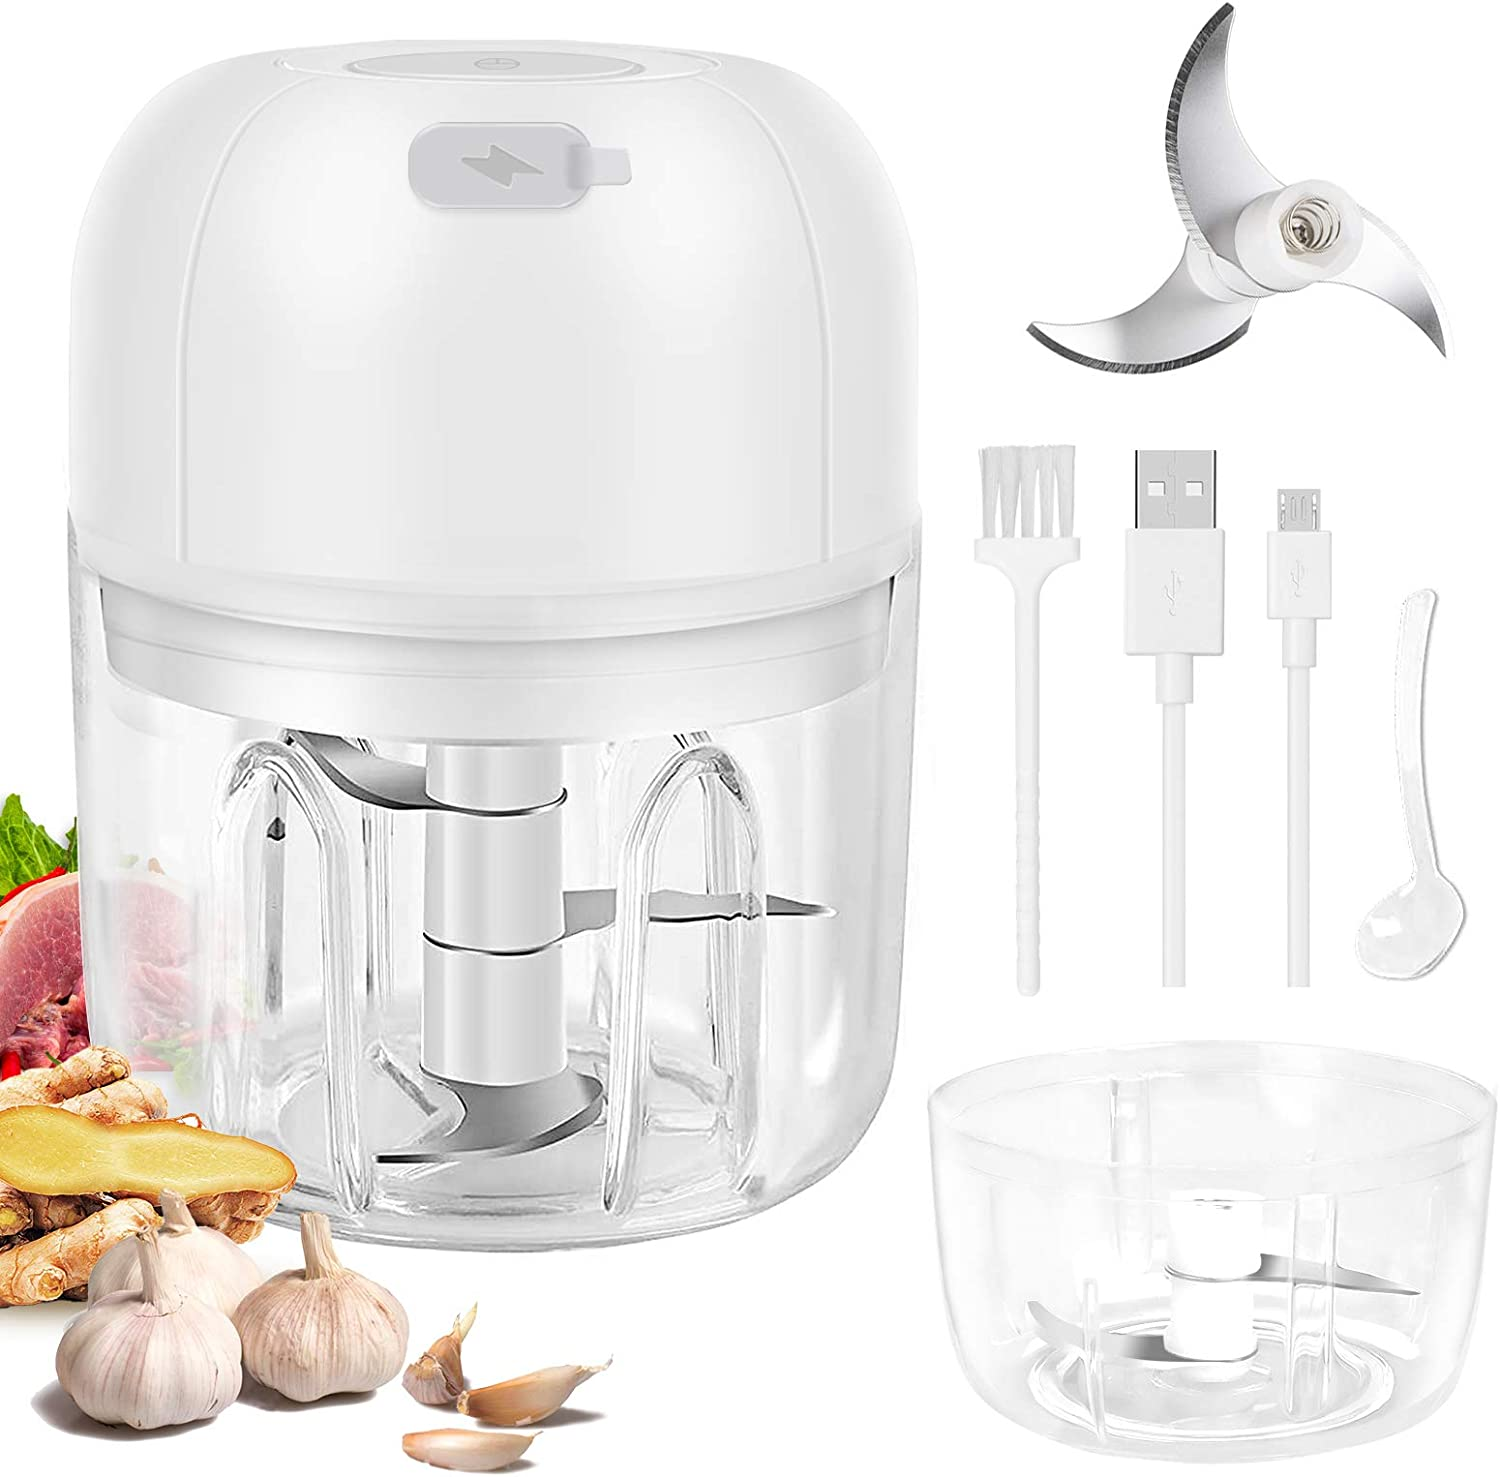 Electric Garlic Grinder, Wireless Portable Food Processor with USB Charging, 250 ml + 100 ml Waterproof Double Cup Garlic Masher, Mini Food Grinder for Garlic Chili Onion Pepper Vegetable